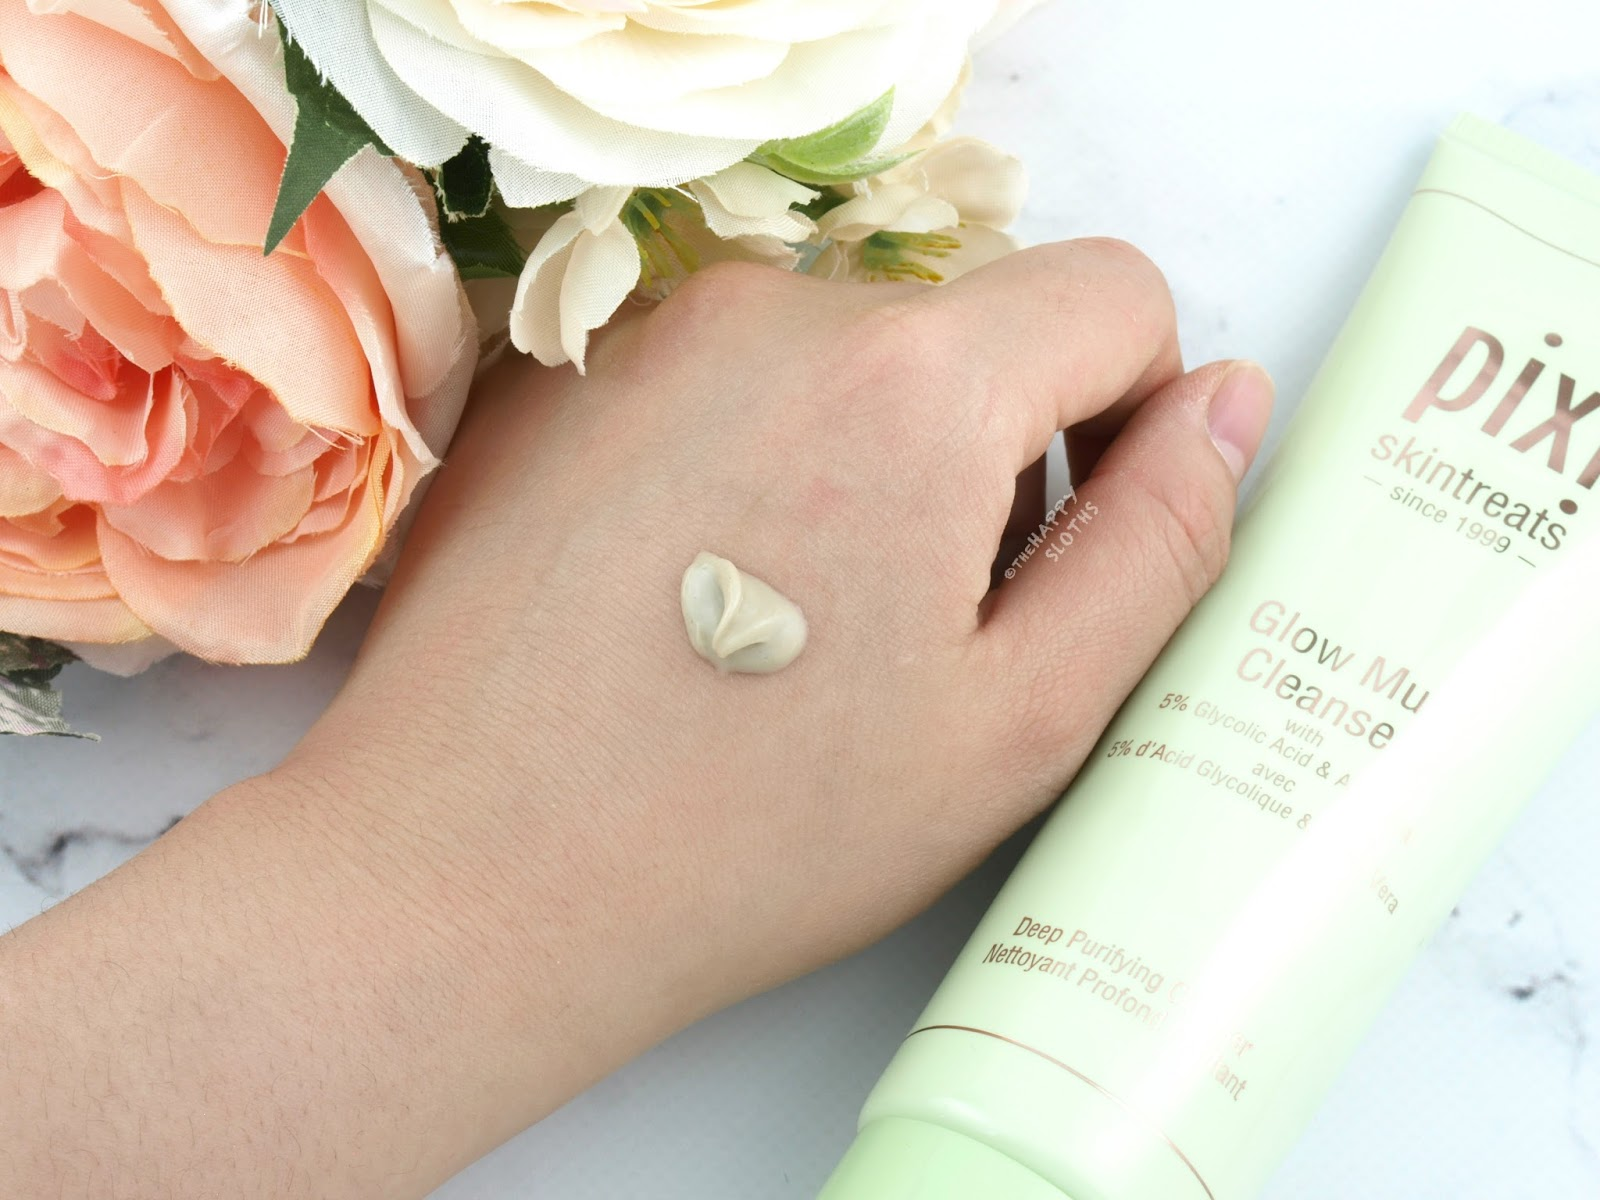 Pixi Glow Mud Cleanser Review